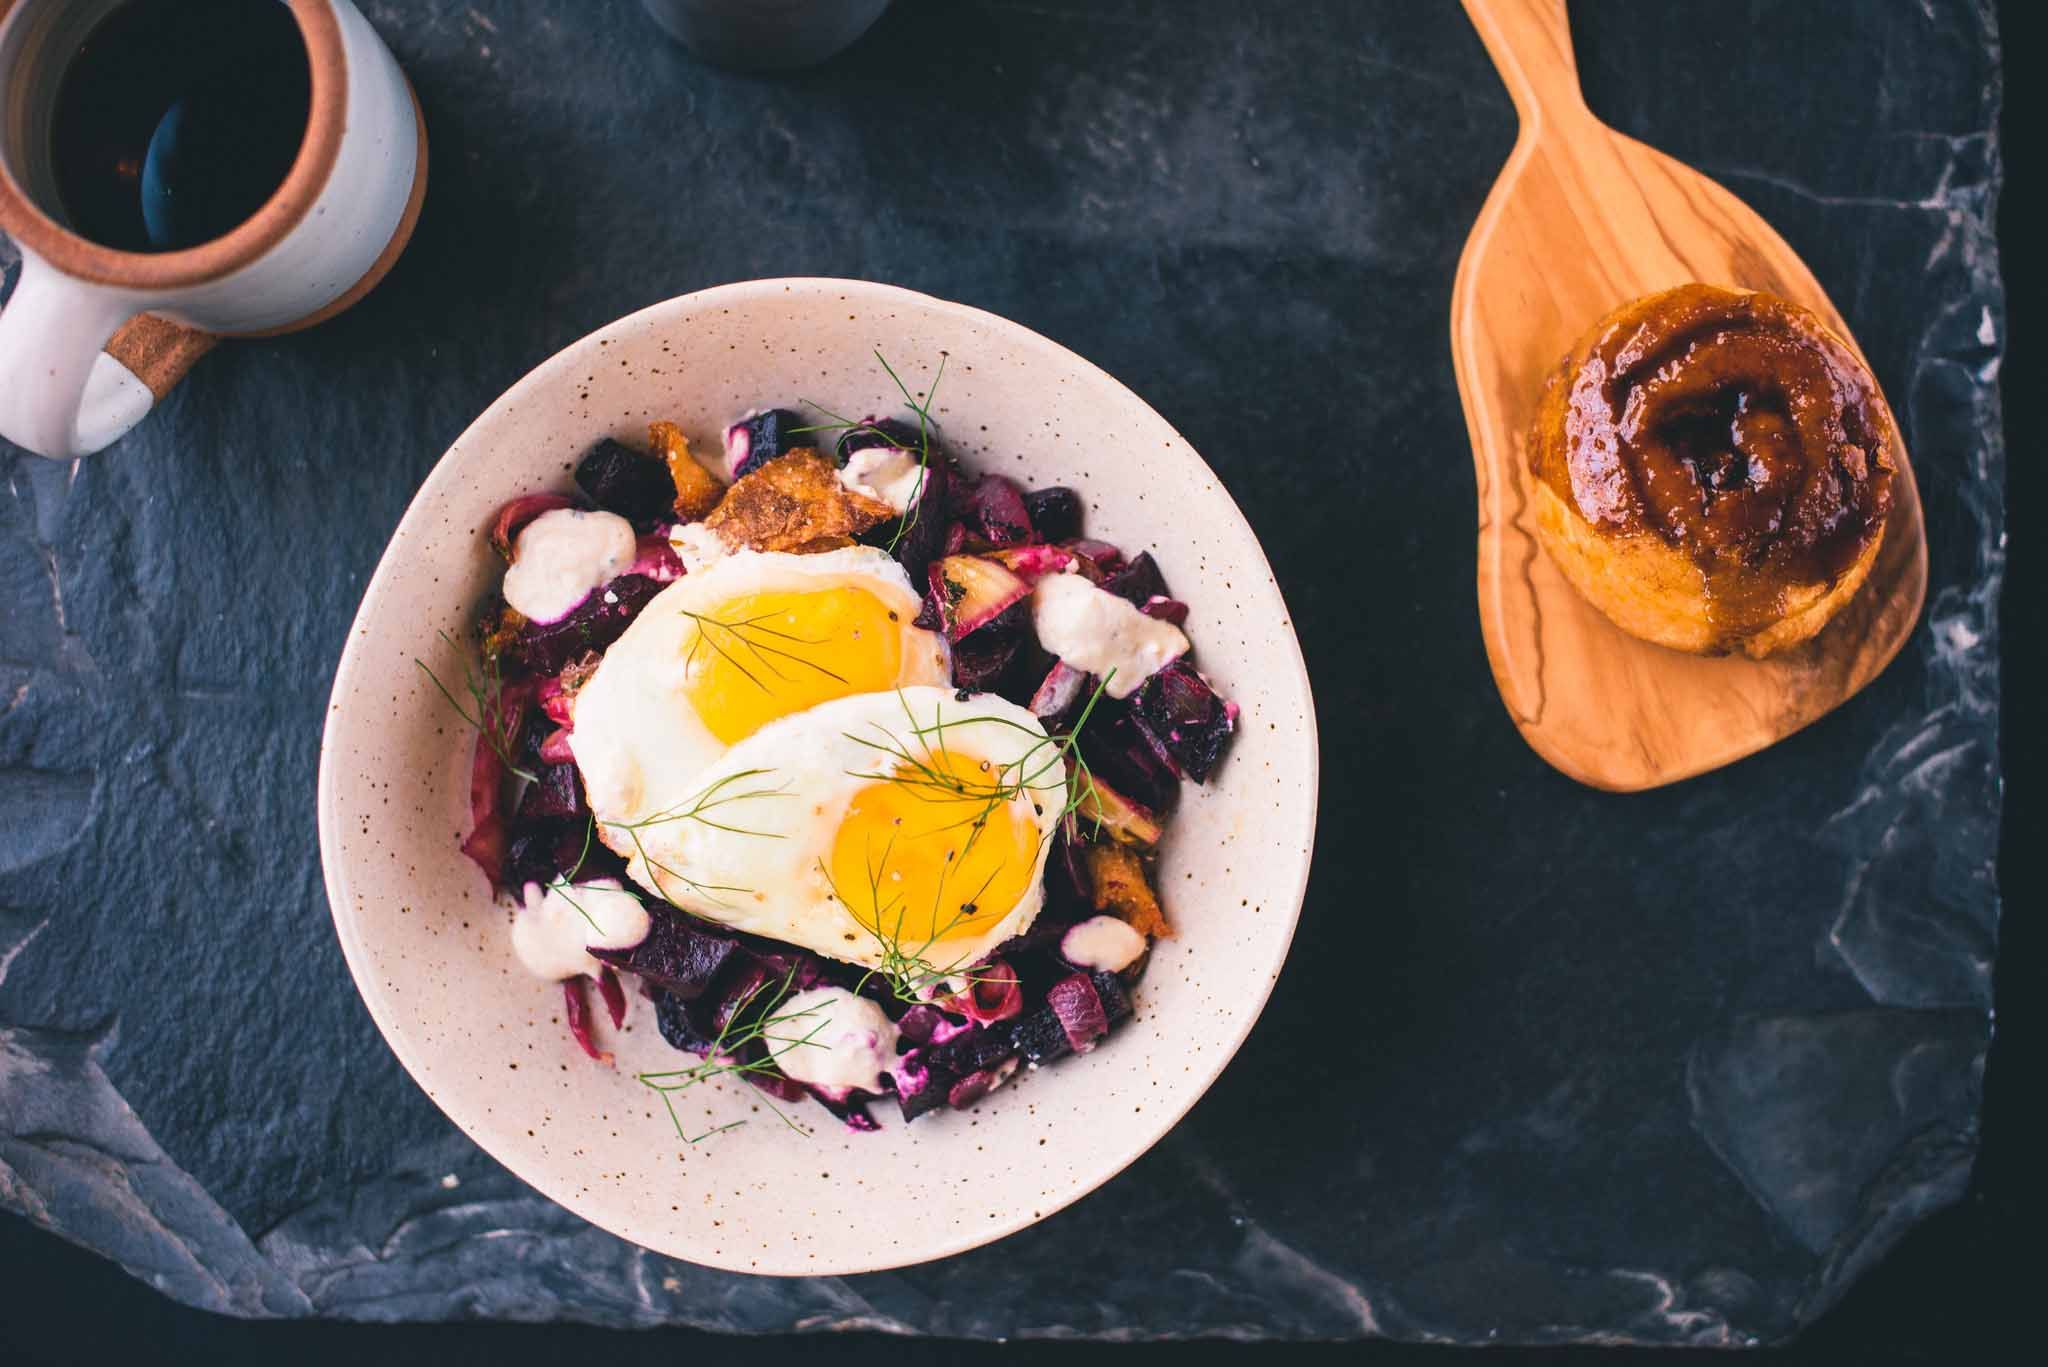 RED FLANNEL HASH salt-roasted beets, herbed potato cracklins, two fried eggs, horseradish crema, onions